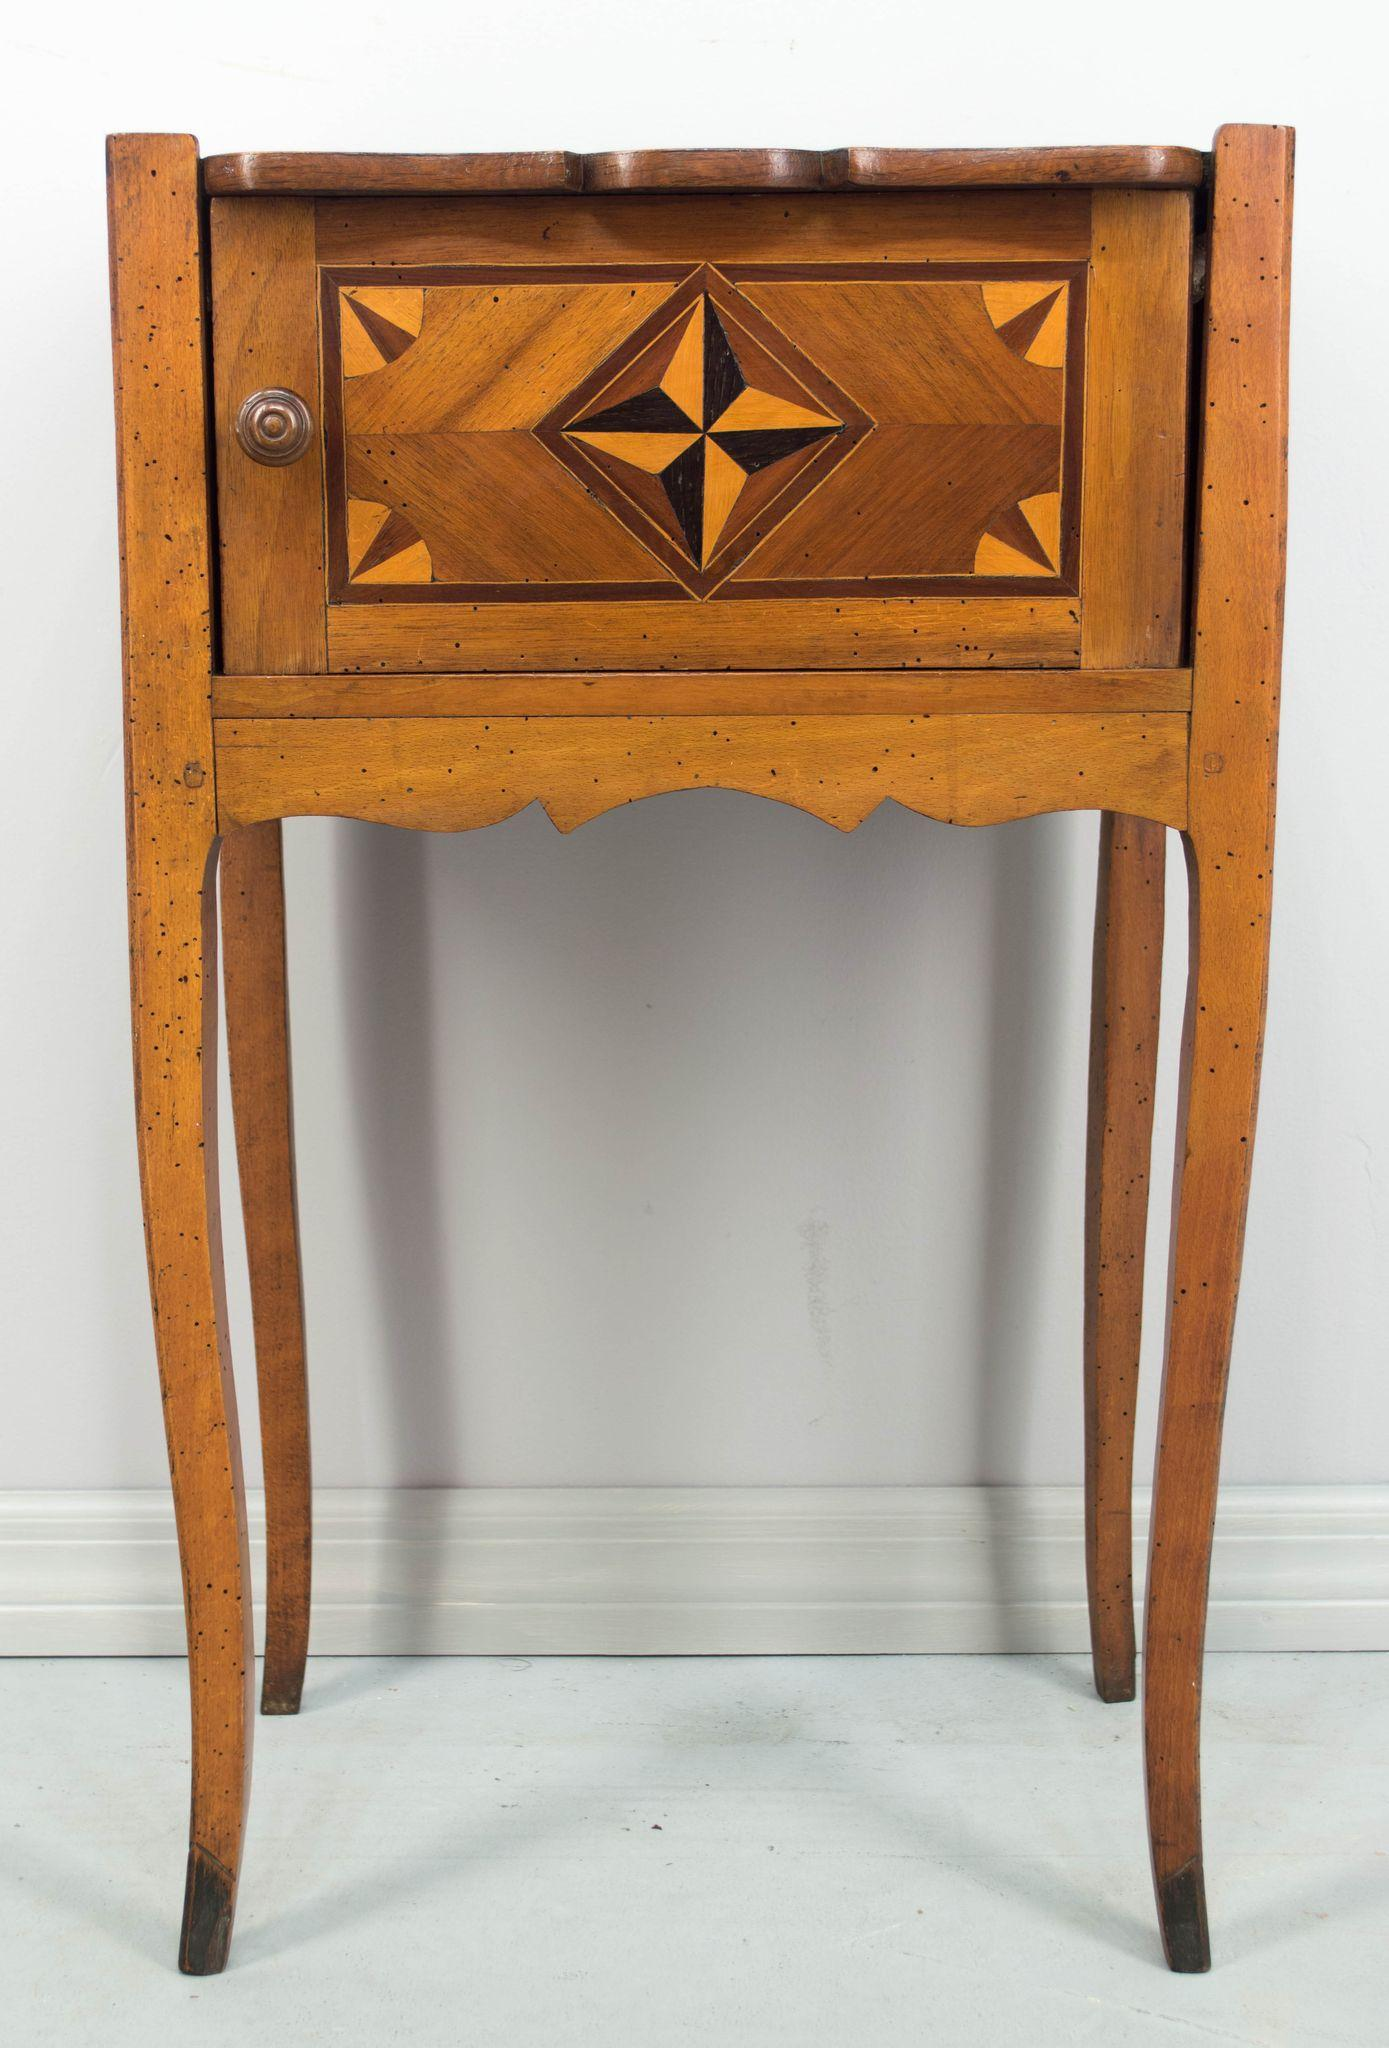 19th c louis xv style side table from ofleury on ruby lane for 66125 3